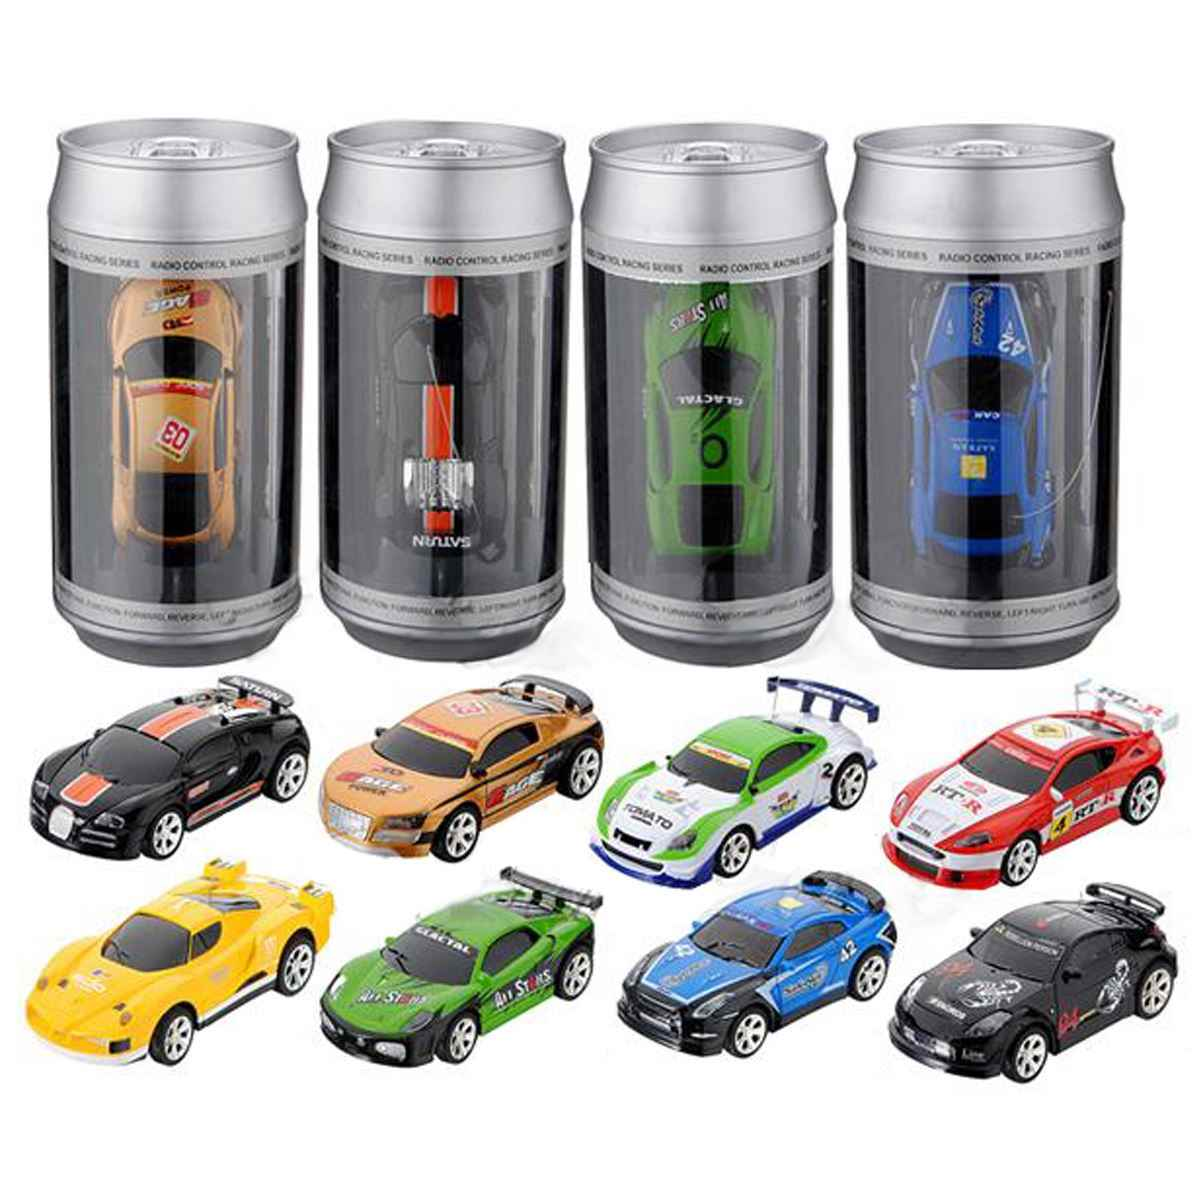 8 kleuren Hot Sales 20 KM/H Coke Can Mini RC Car Radio Remote Control Micro Racing Car 4 Frequenties Speelgoed voor Kinderen